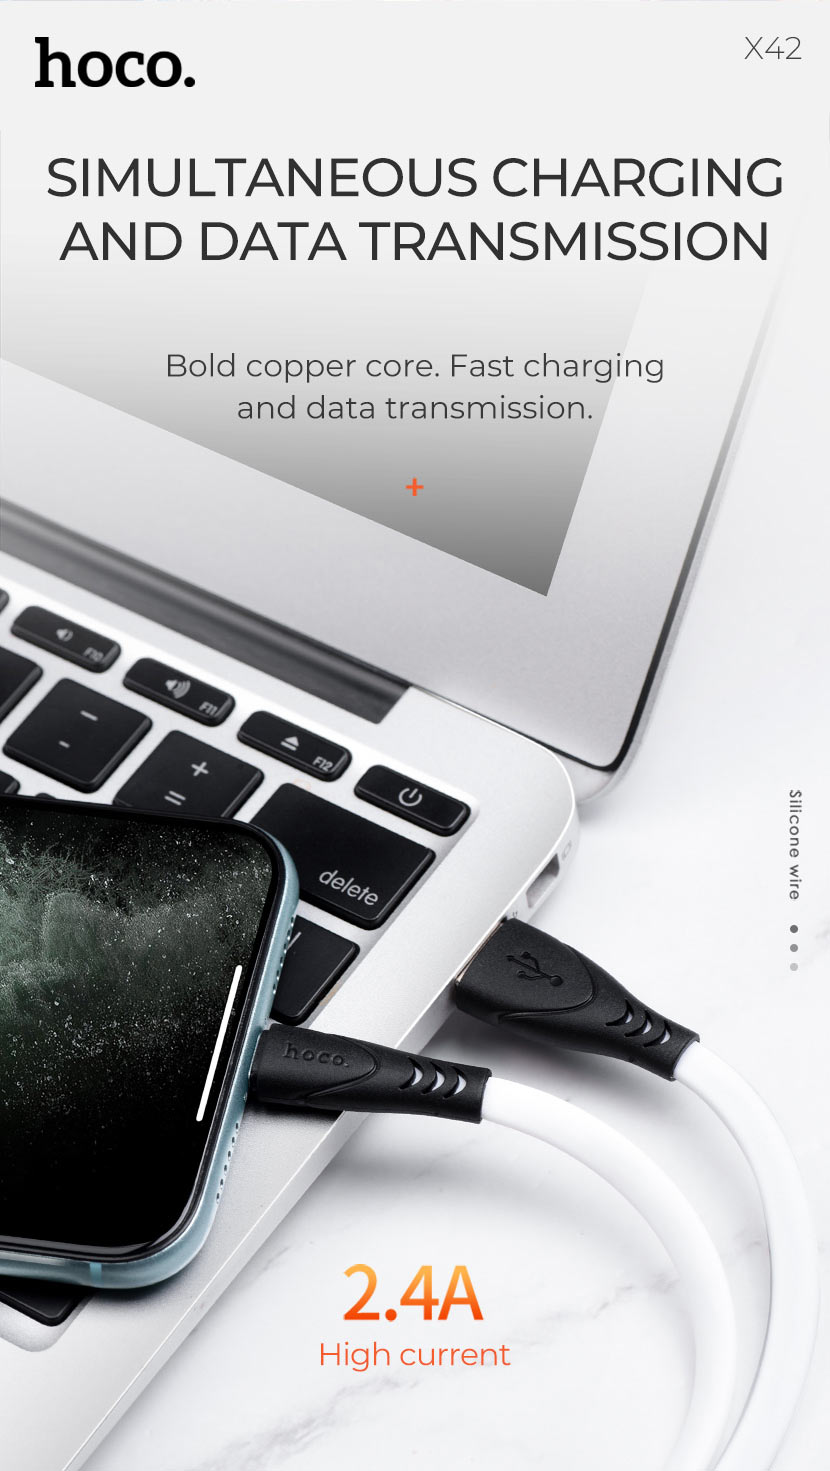 hoco news x42 soft silicone charging cable transfer en